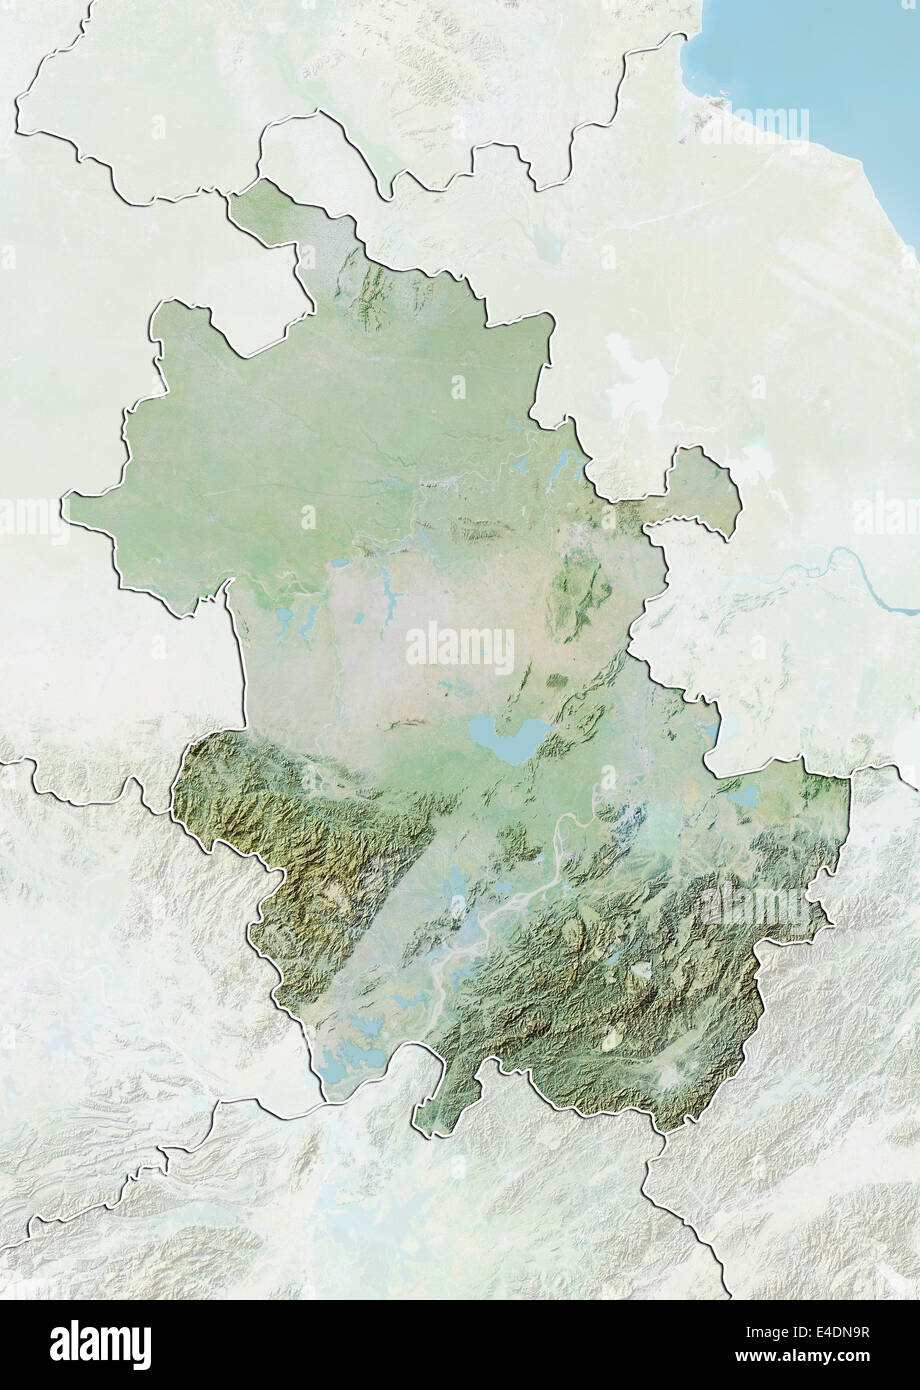 Province Of Anhui China Relief Map Stock Photo 71602211 Alamy